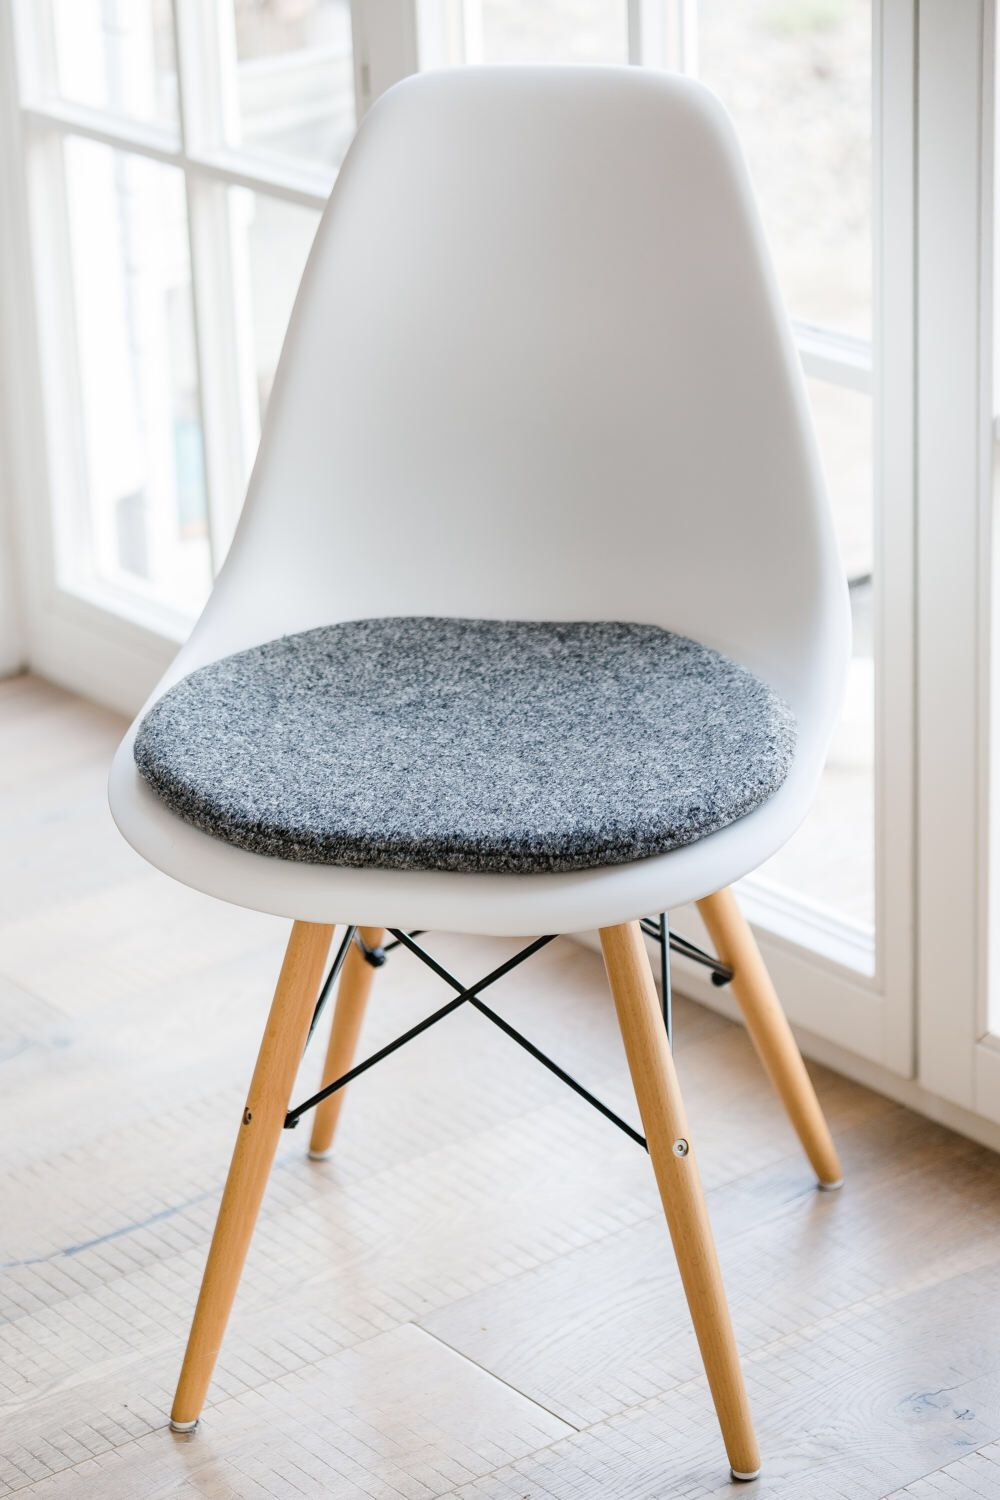 Chair cushions in gray suitable for Eames Chair limited by